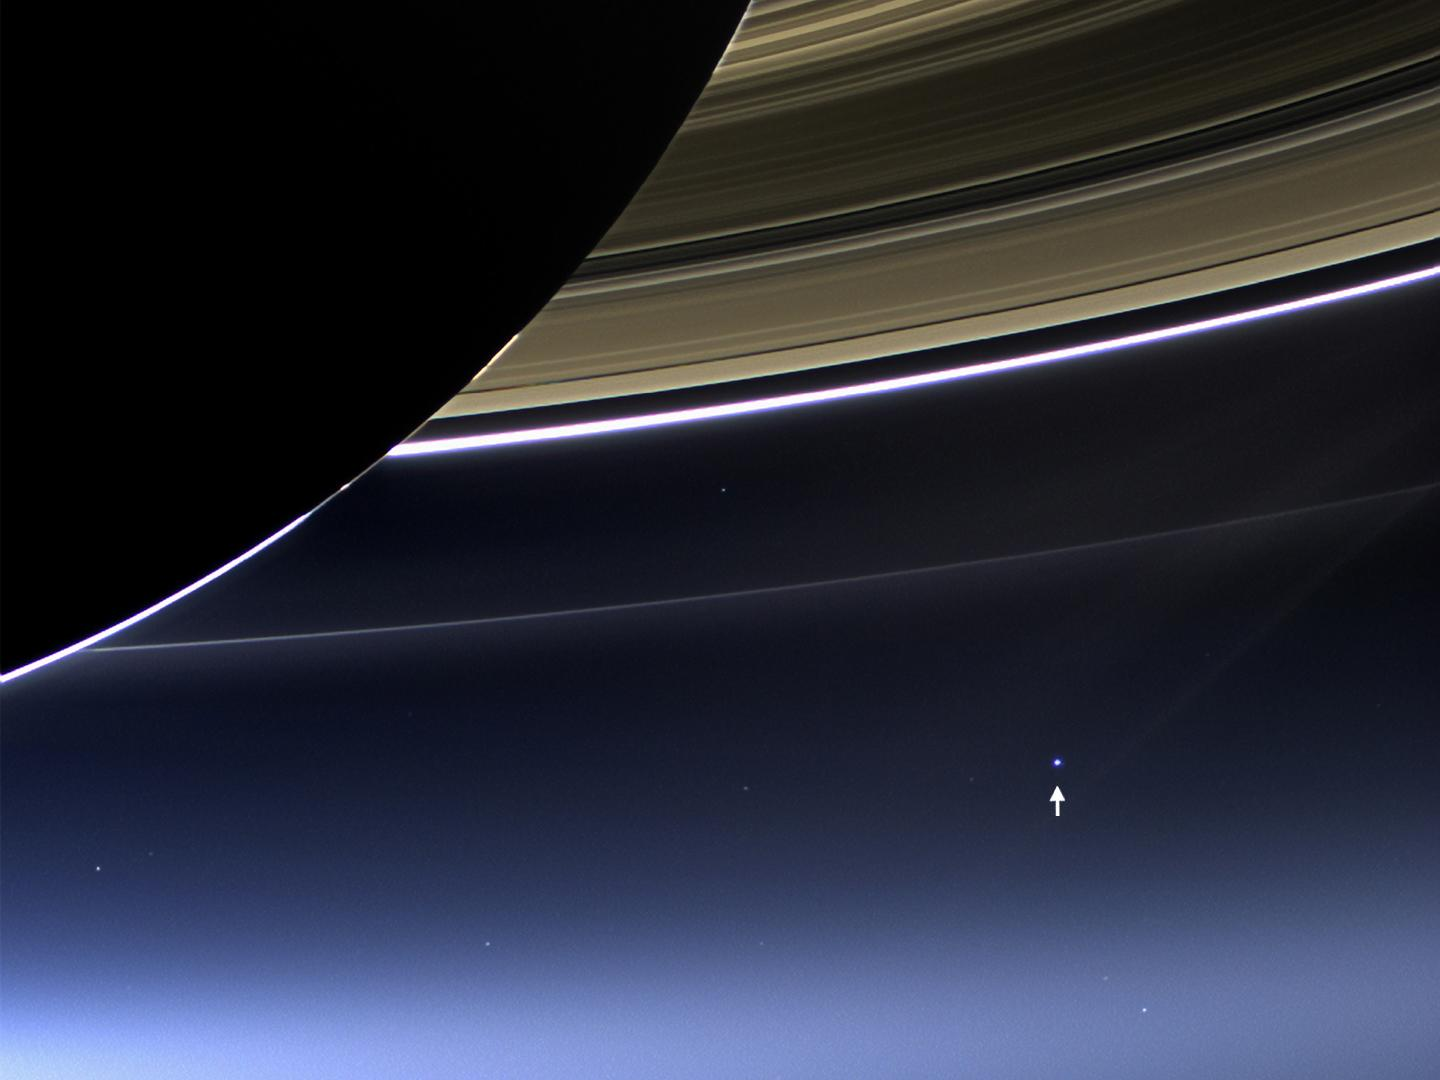 This rare image has captured Saturn's rings and our planet Earth and its moon in the same frame. Earth, which is 898 million miles away in this image, appears as a blue dot at center right; the moon can be seen as a fainter protrusion off its right side. Credit: NASA/JPL-Caltech/Space Science Institute